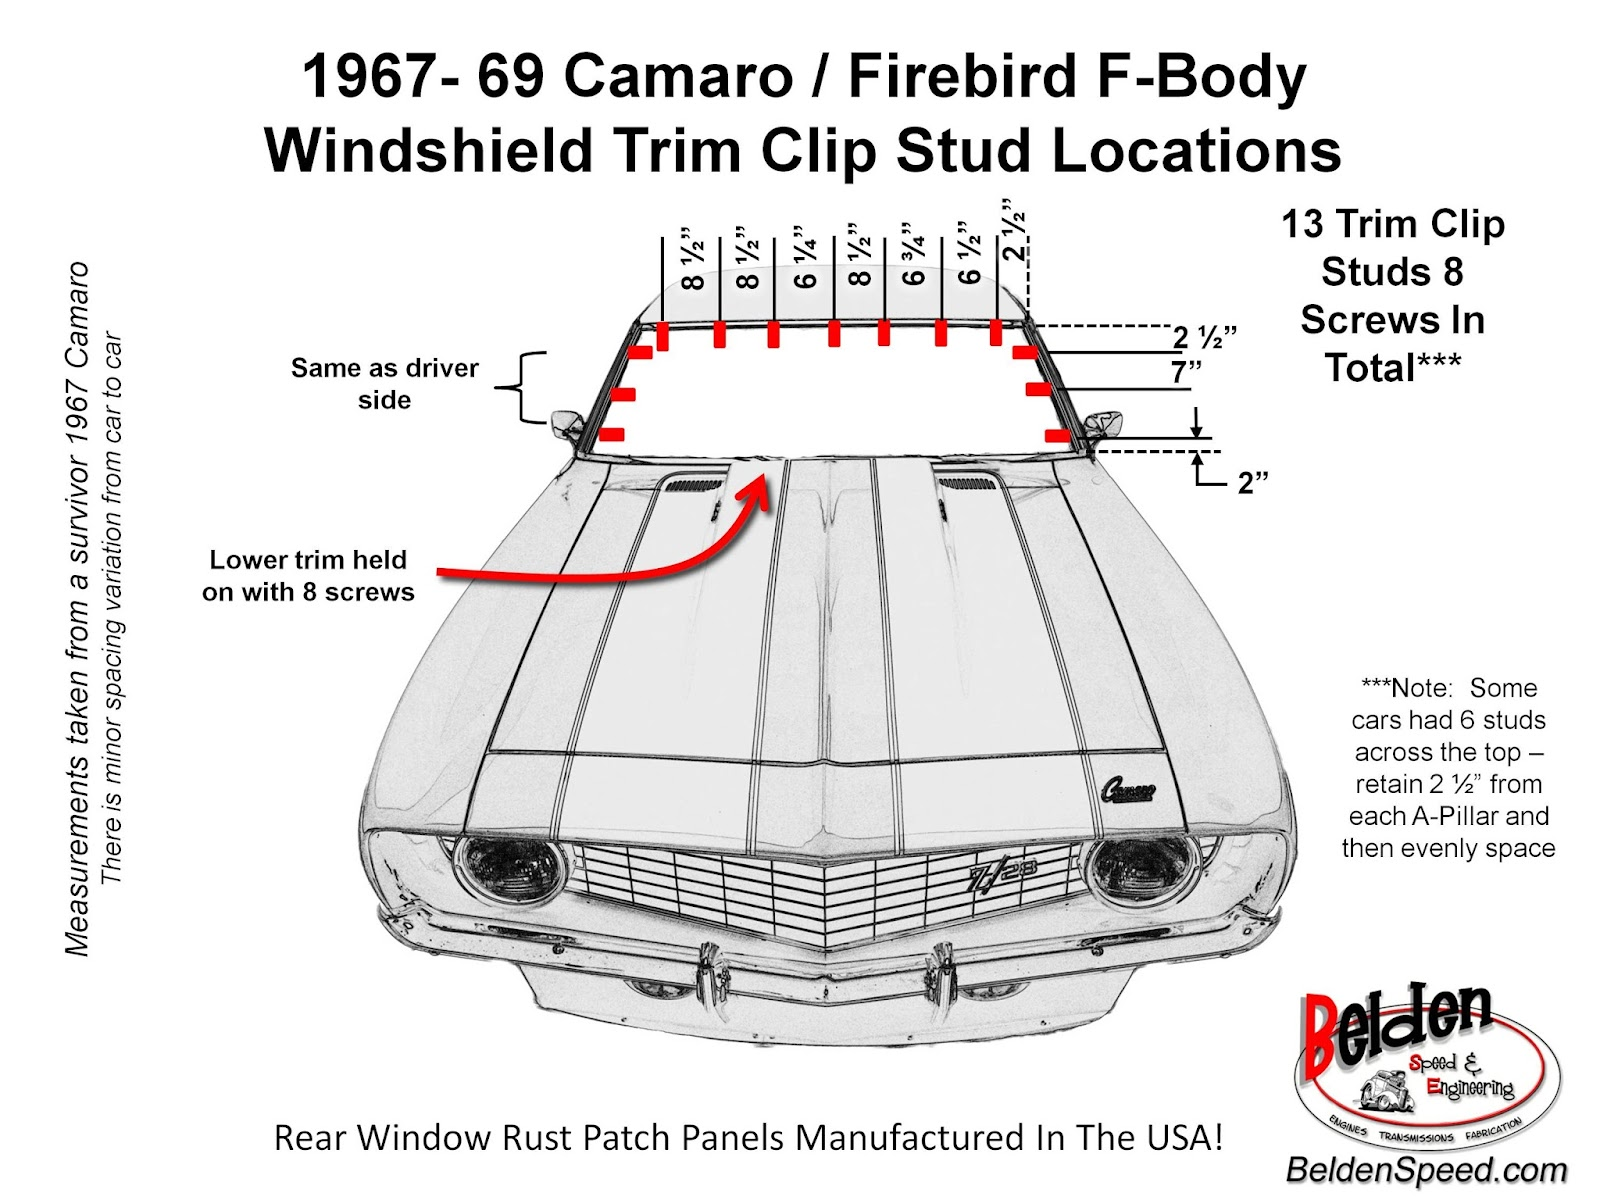 hight resolution of 1967 1969 camaro firebird f body windshield trim clip stud locations